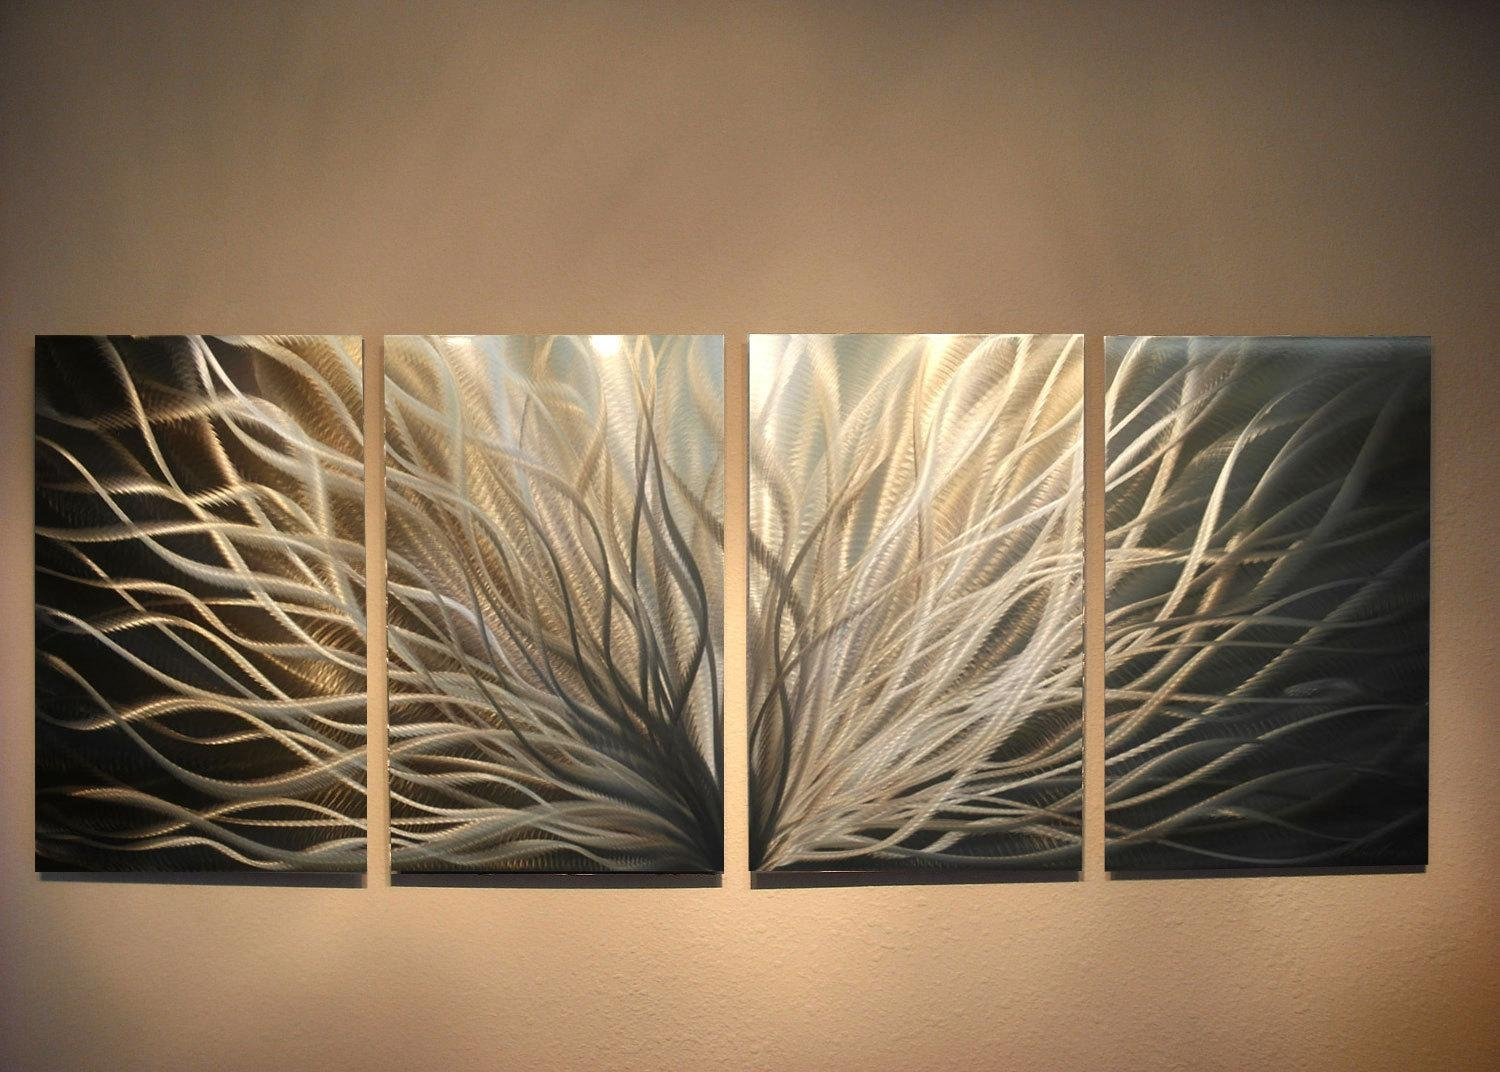 Metal Art Wall Art Decor Aluminum Abstract Contemporary Modern Regarding Metal Art For Wall Hangings (View 14 of 20)